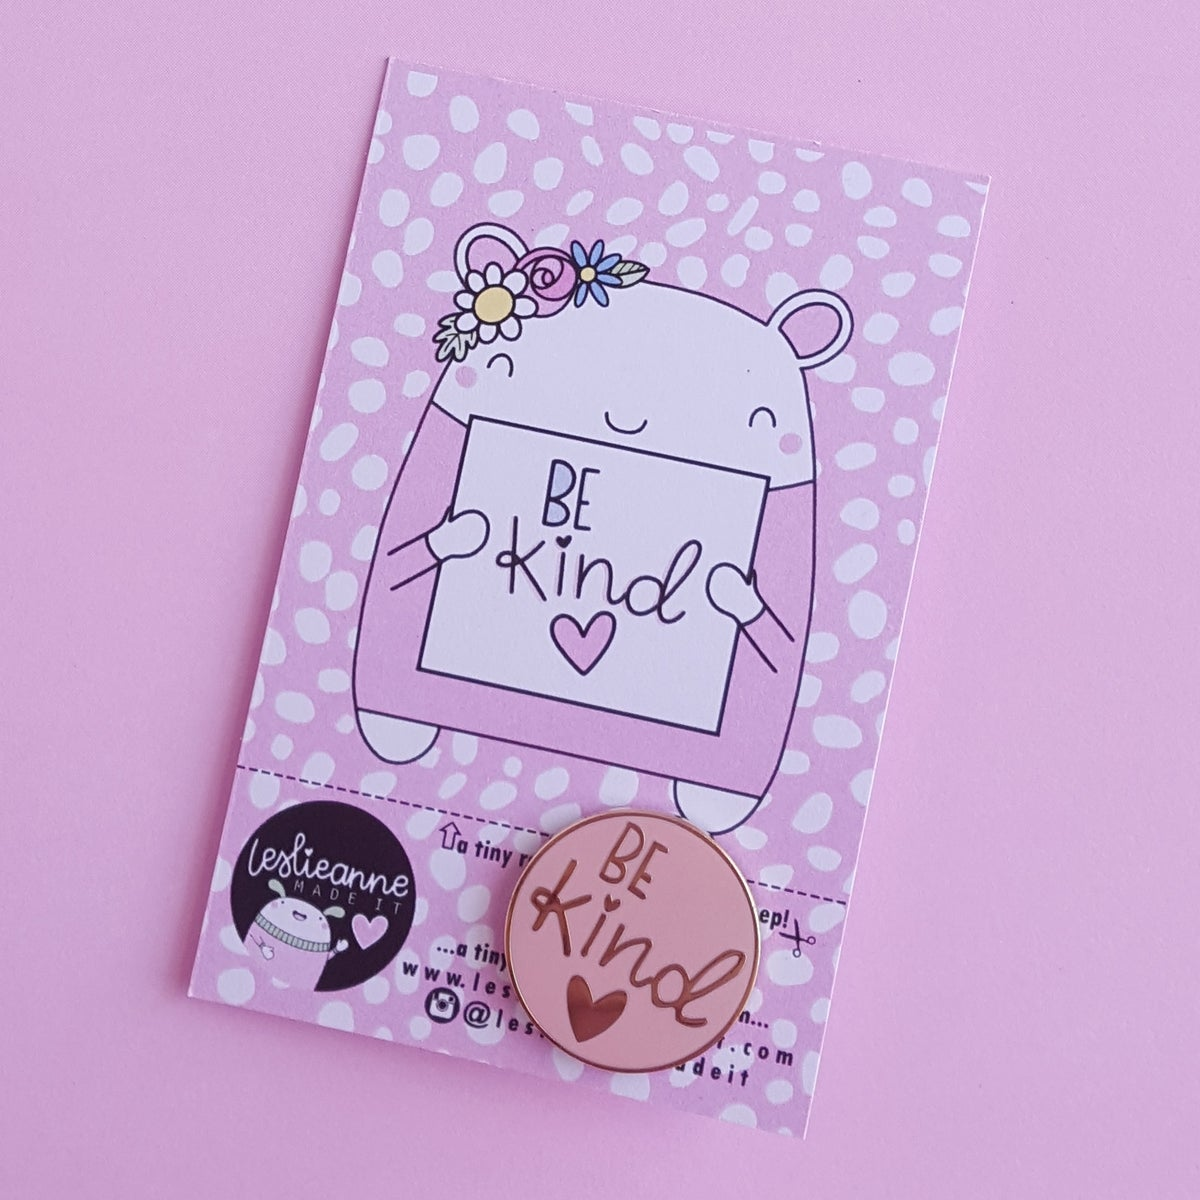 Be Kind : Pastel Pink Hard Enamel Pin